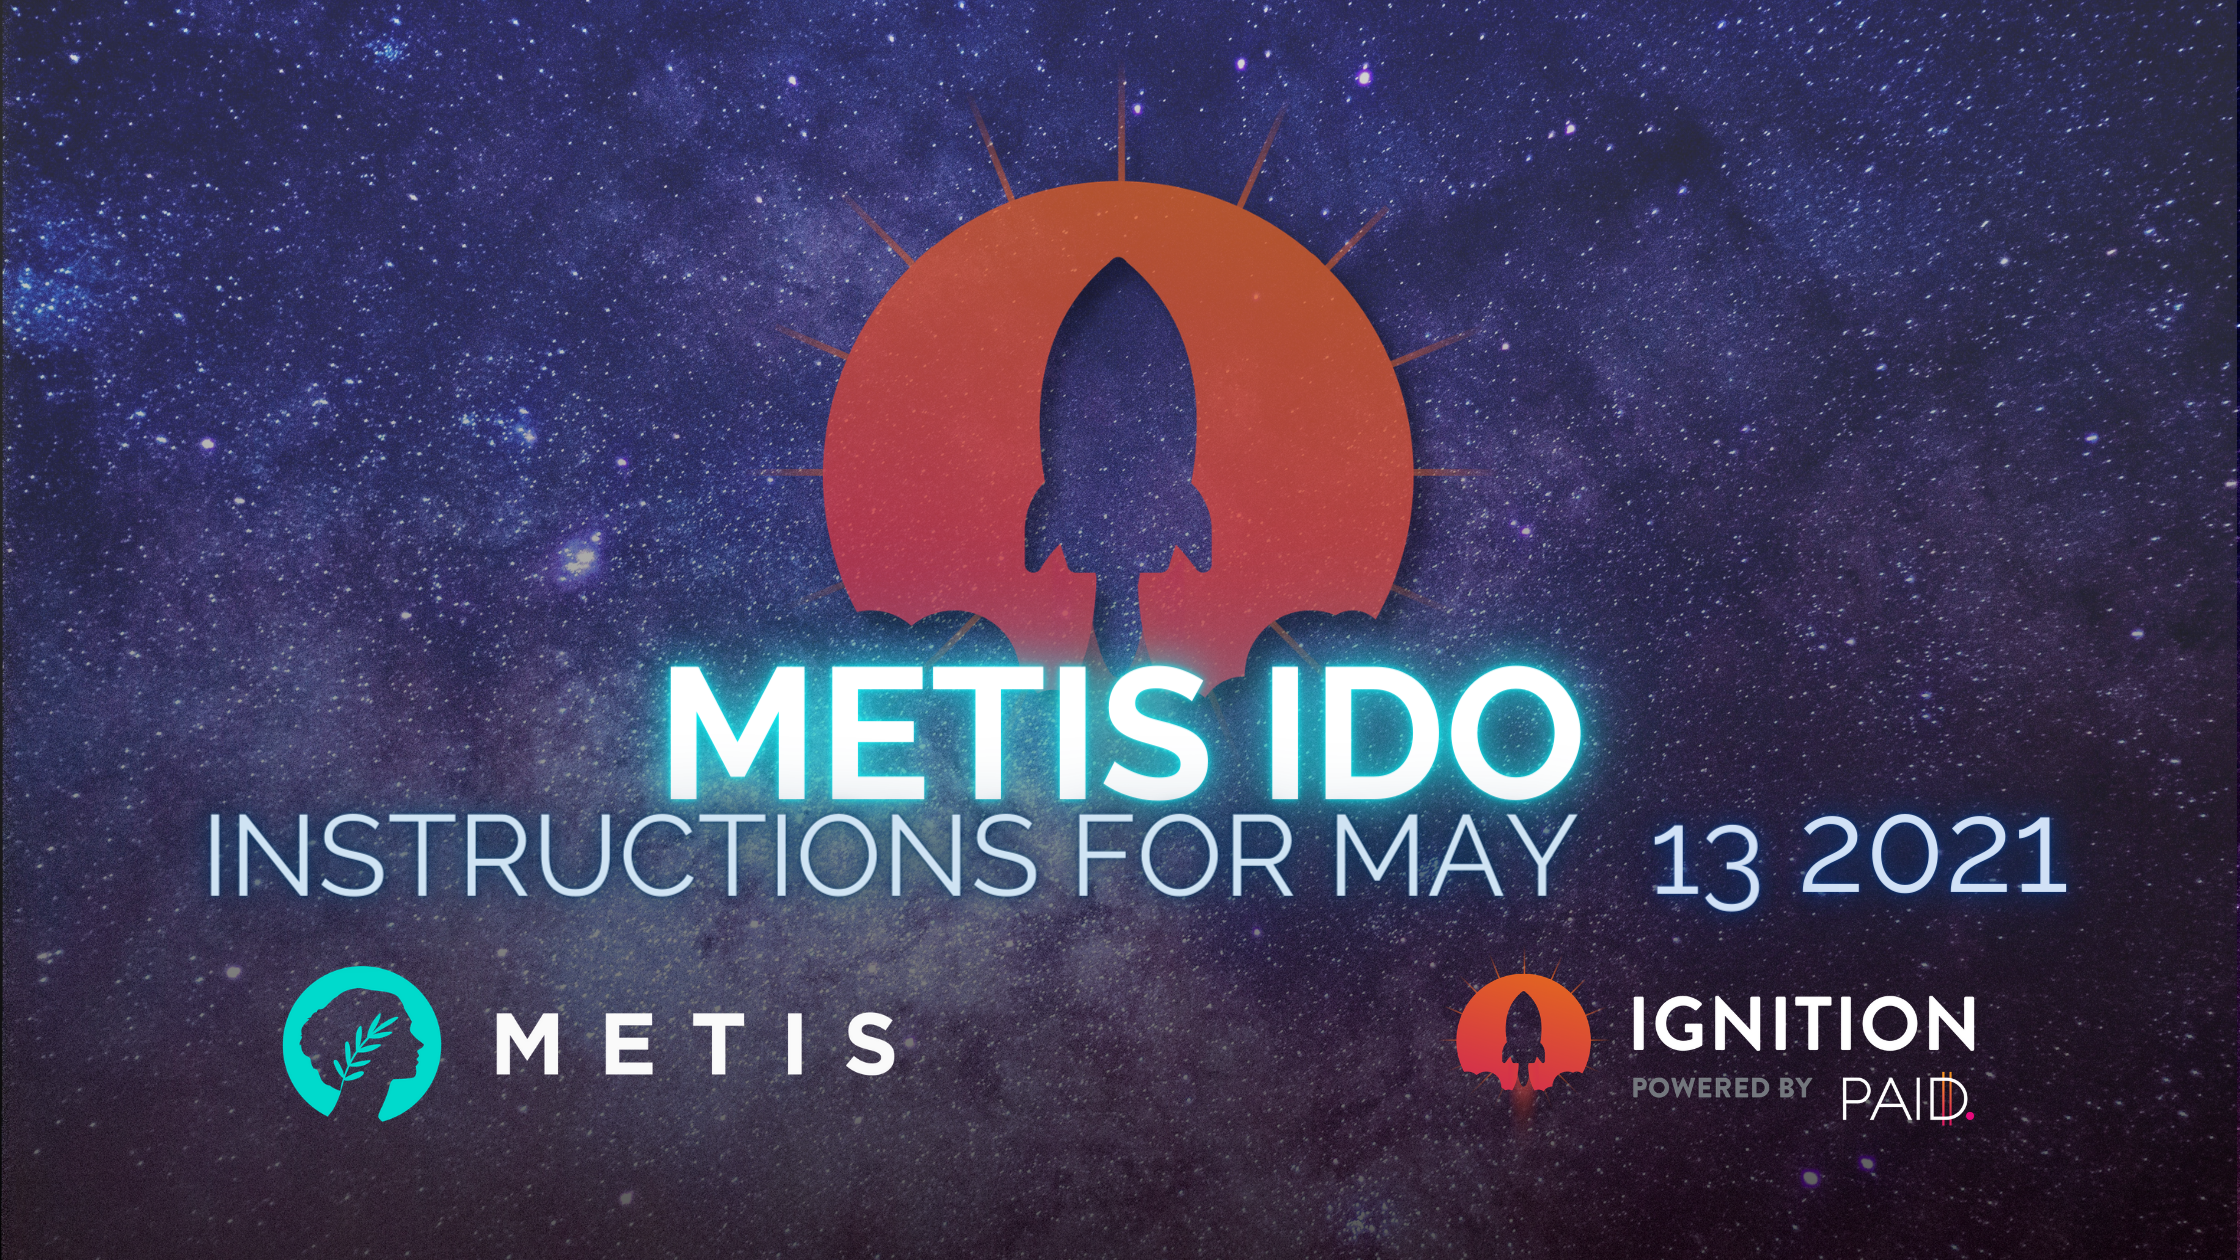 Metis Winners and IDO Details